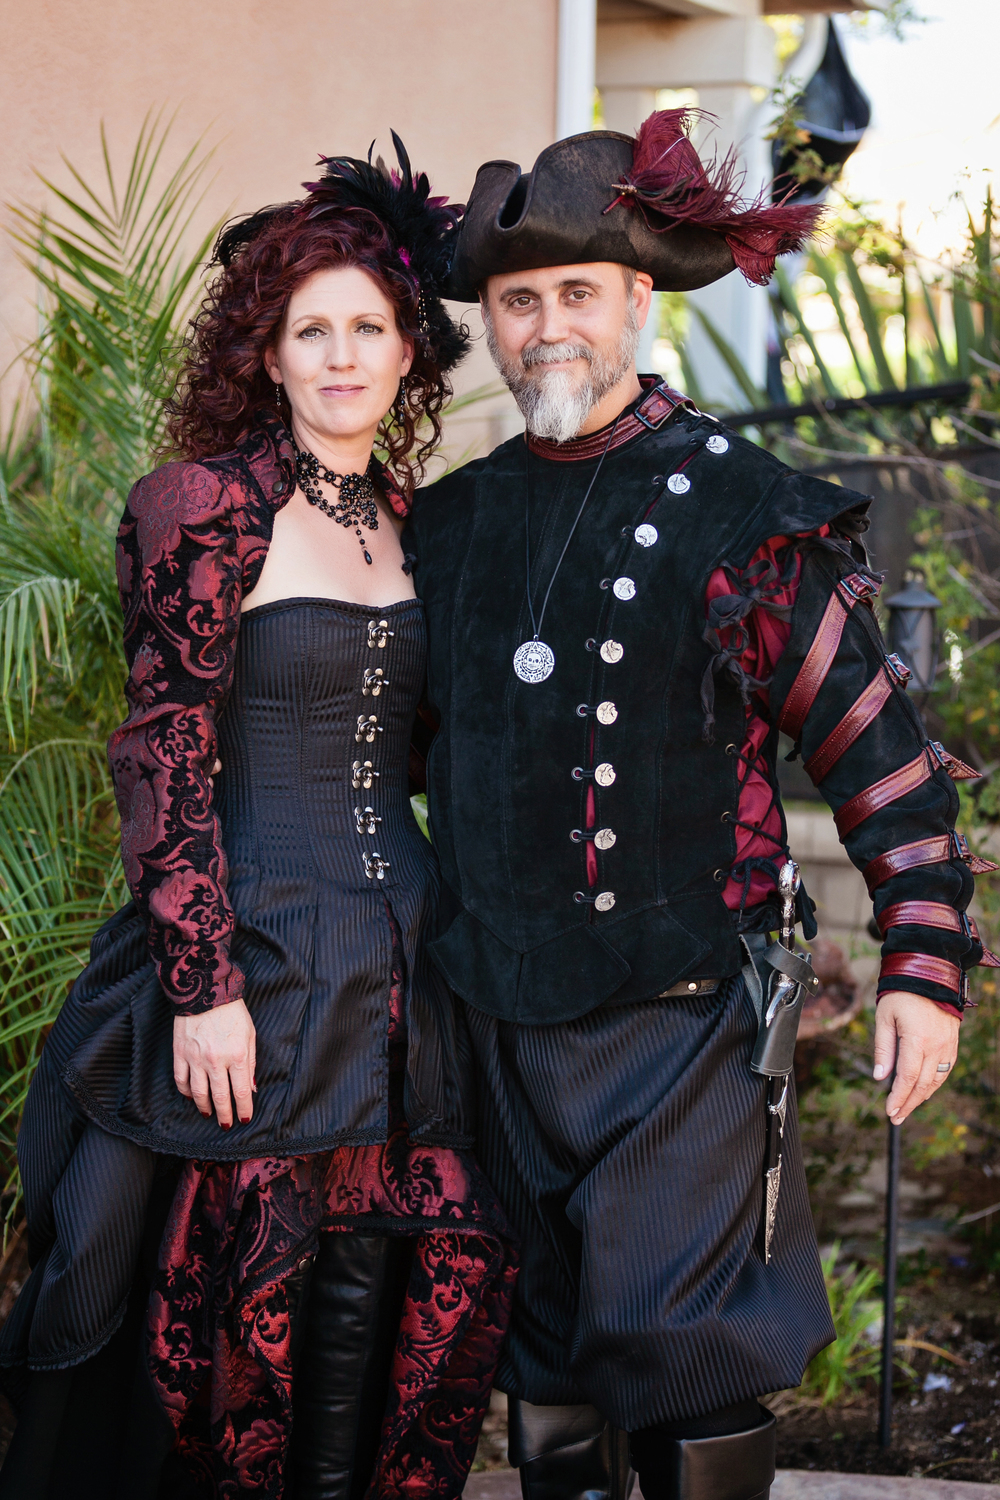 b8694985239 The Corset Gown Outfit and the Livingston Doublet can be found in our  Steampunk Collection.